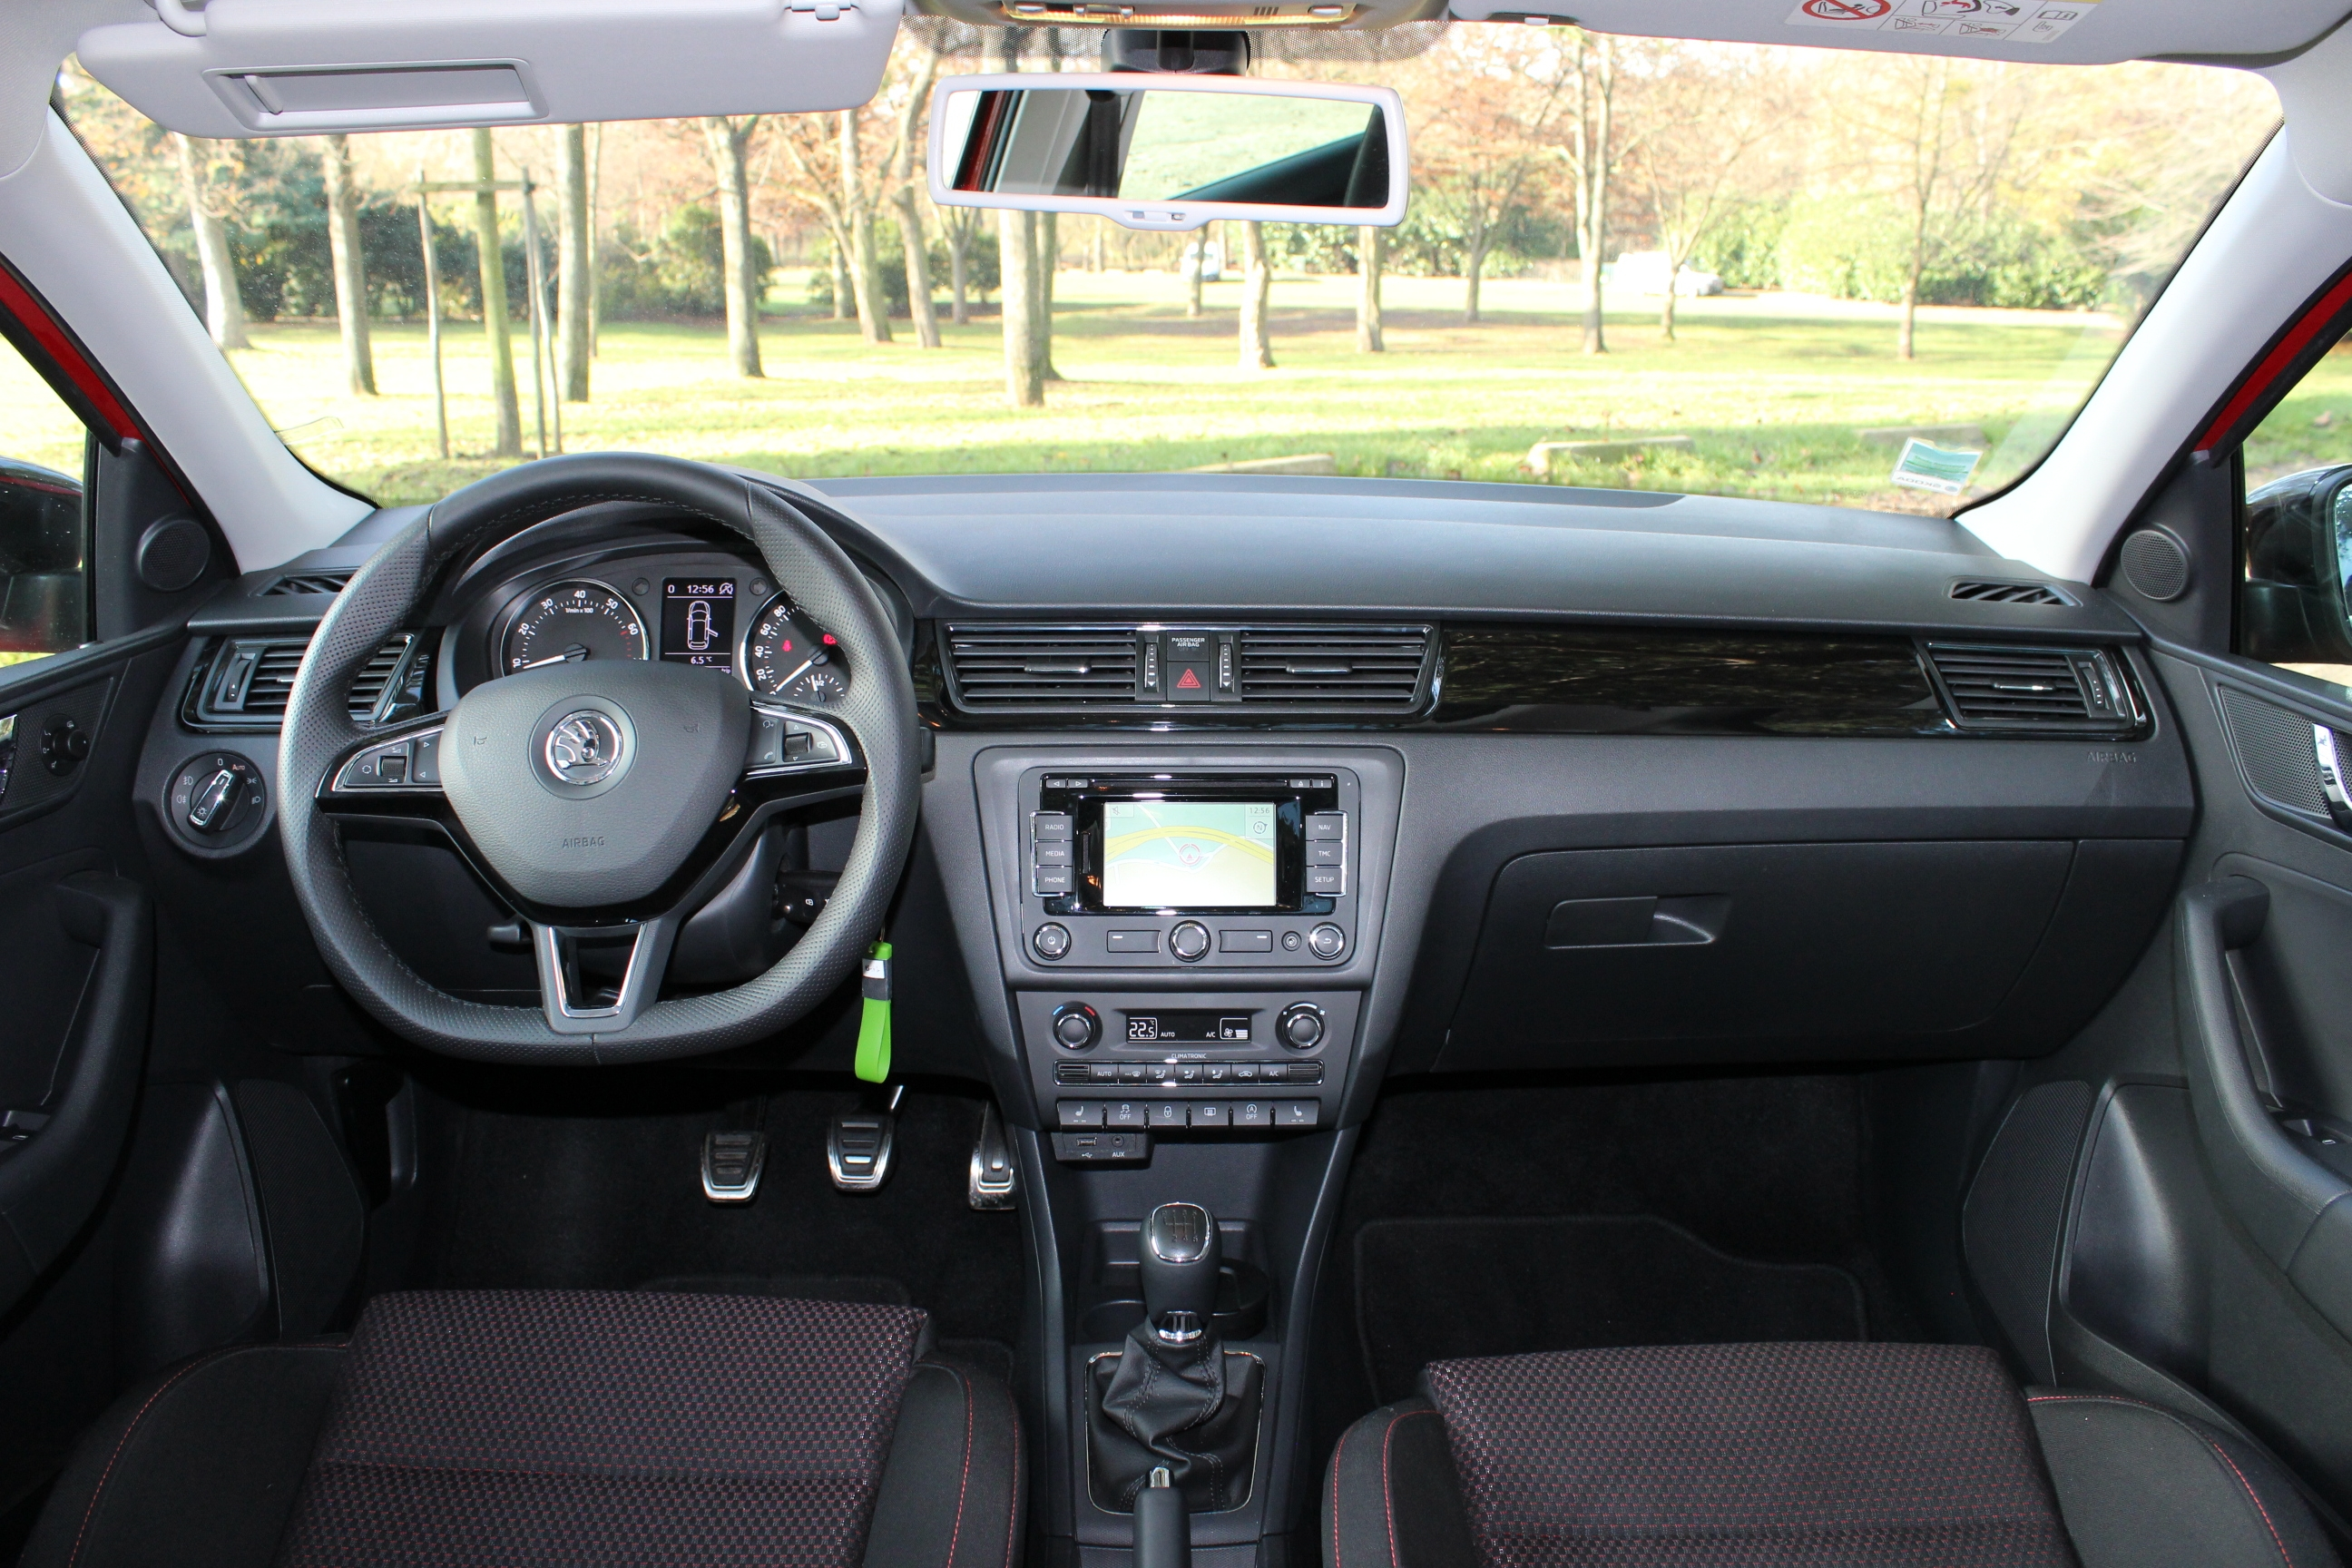 essai skoda rapid spaceback 1 2 tsi 105 moteur top et ch ssis flop. Black Bedroom Furniture Sets. Home Design Ideas